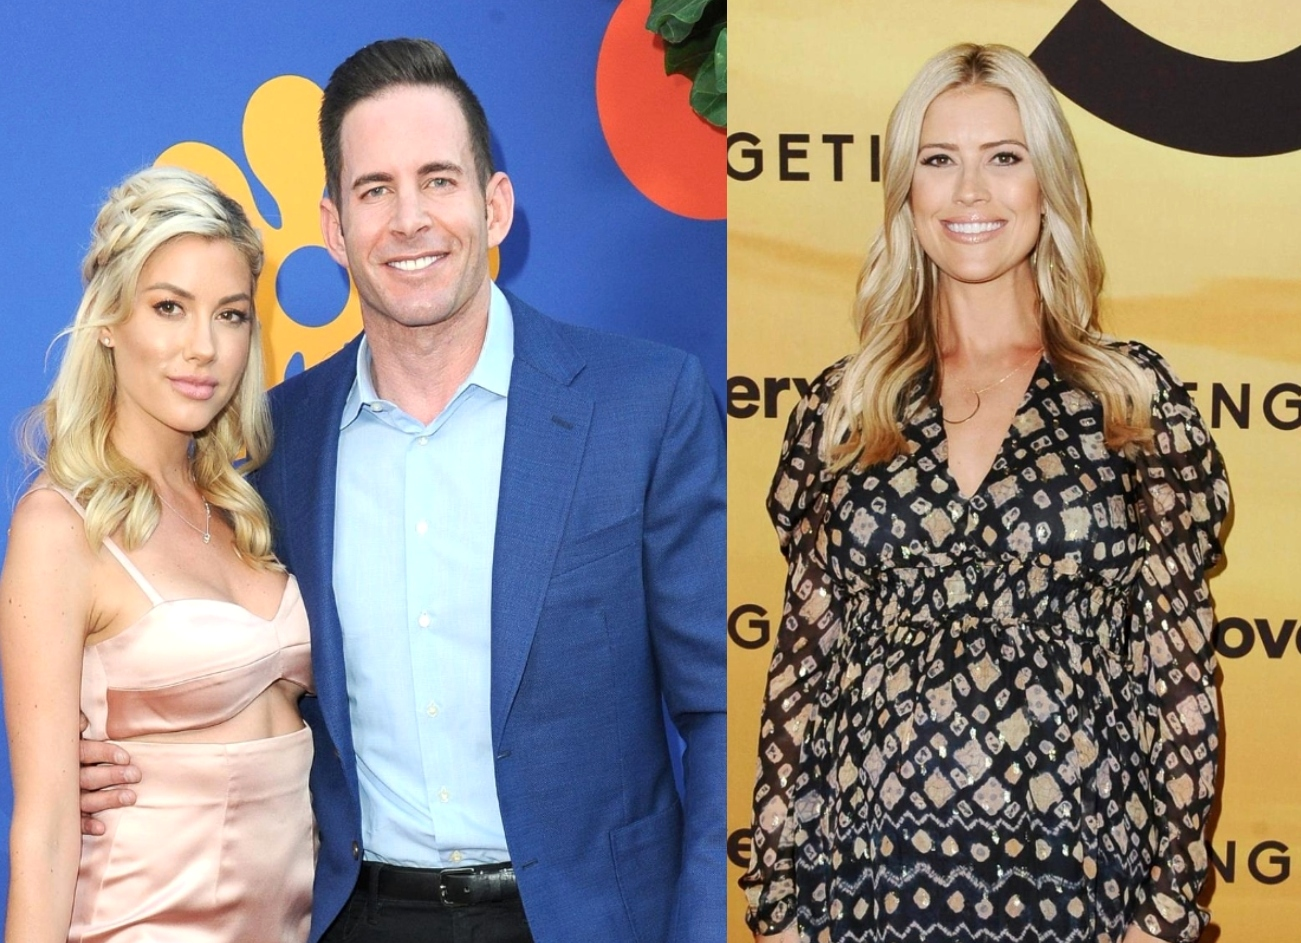 """Selling Sunset's Heather Rae Young Addresses Tarek El Moussa's On-Set Fight With Christina Haack, Admits to """"Frustrations"""" and Talks Co-Parenting"""